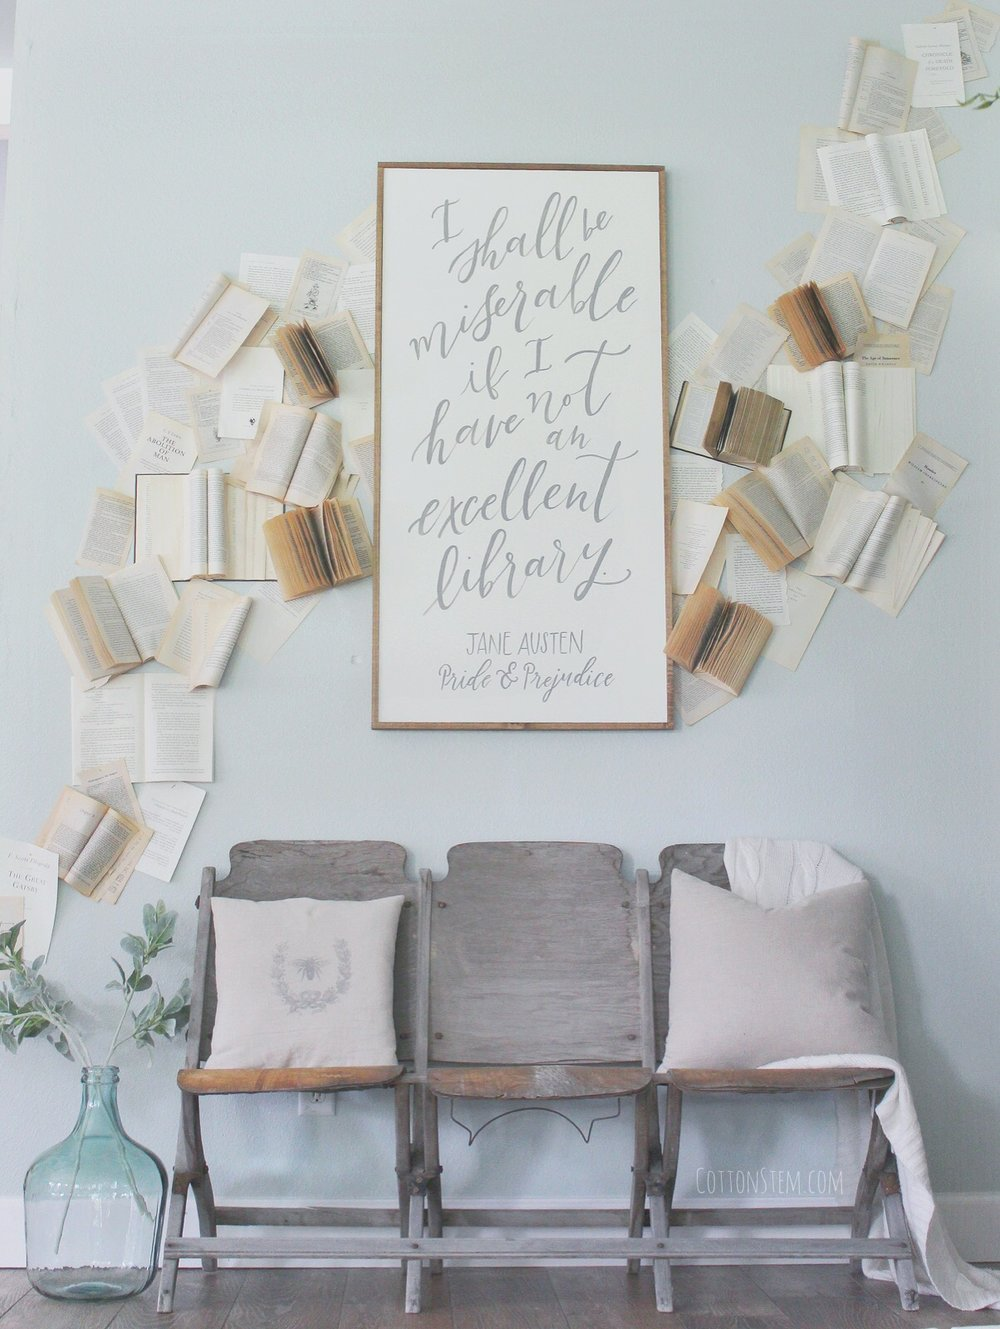 My Vintage Book Wall, Farmhouse Decor www.whitepicketfarmhouse.com